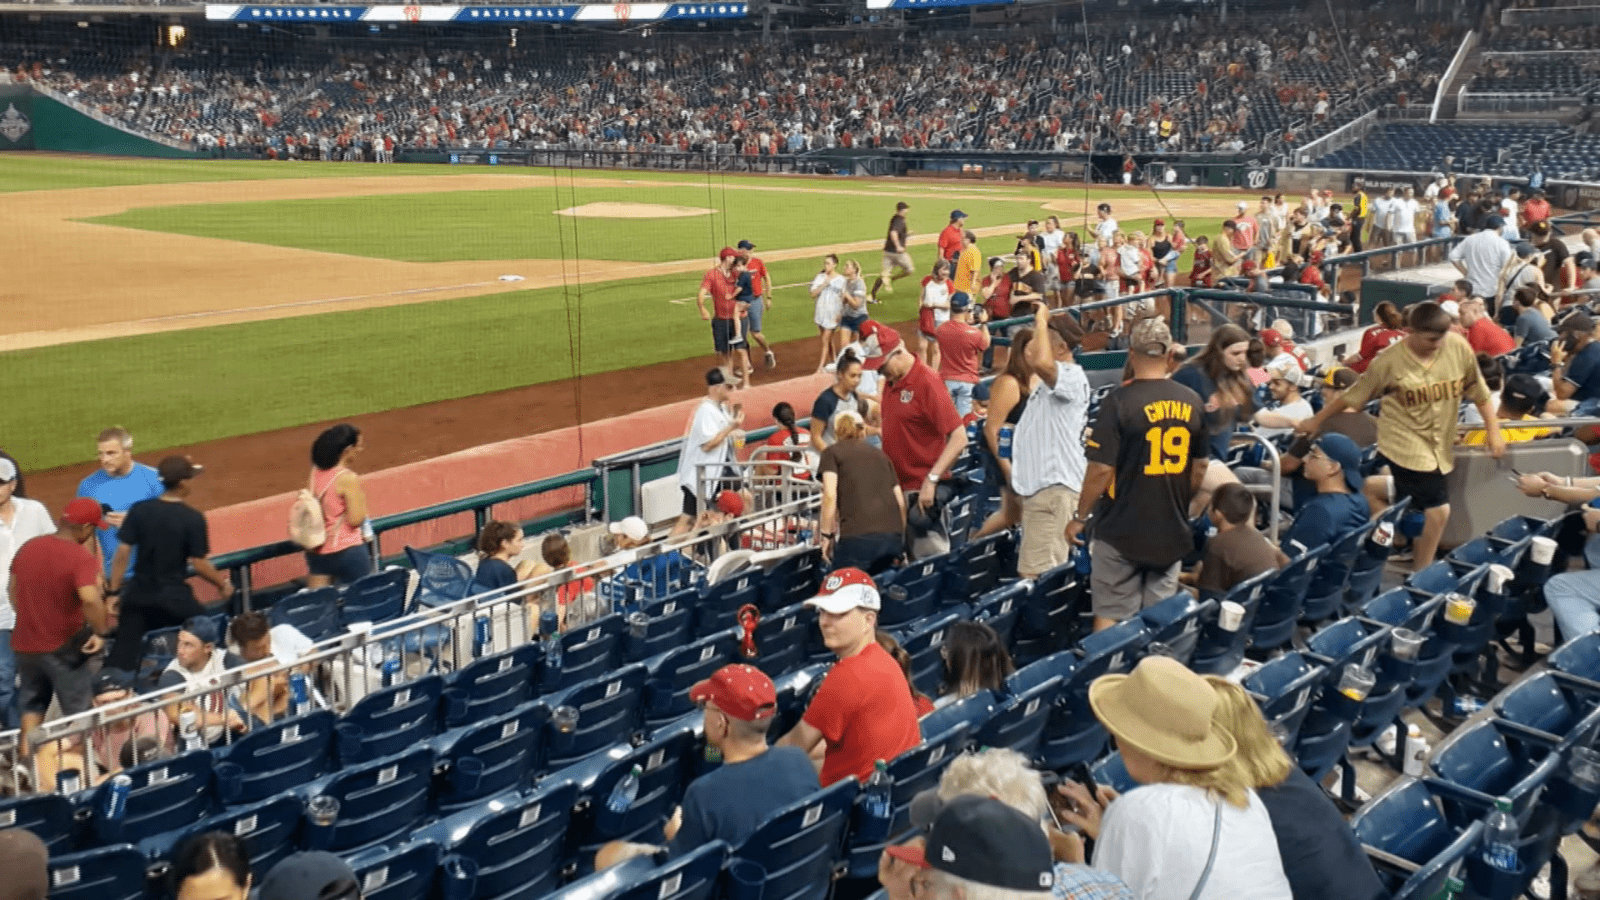 1626675440 3 people injured in shooting outside Nationals stadium Video